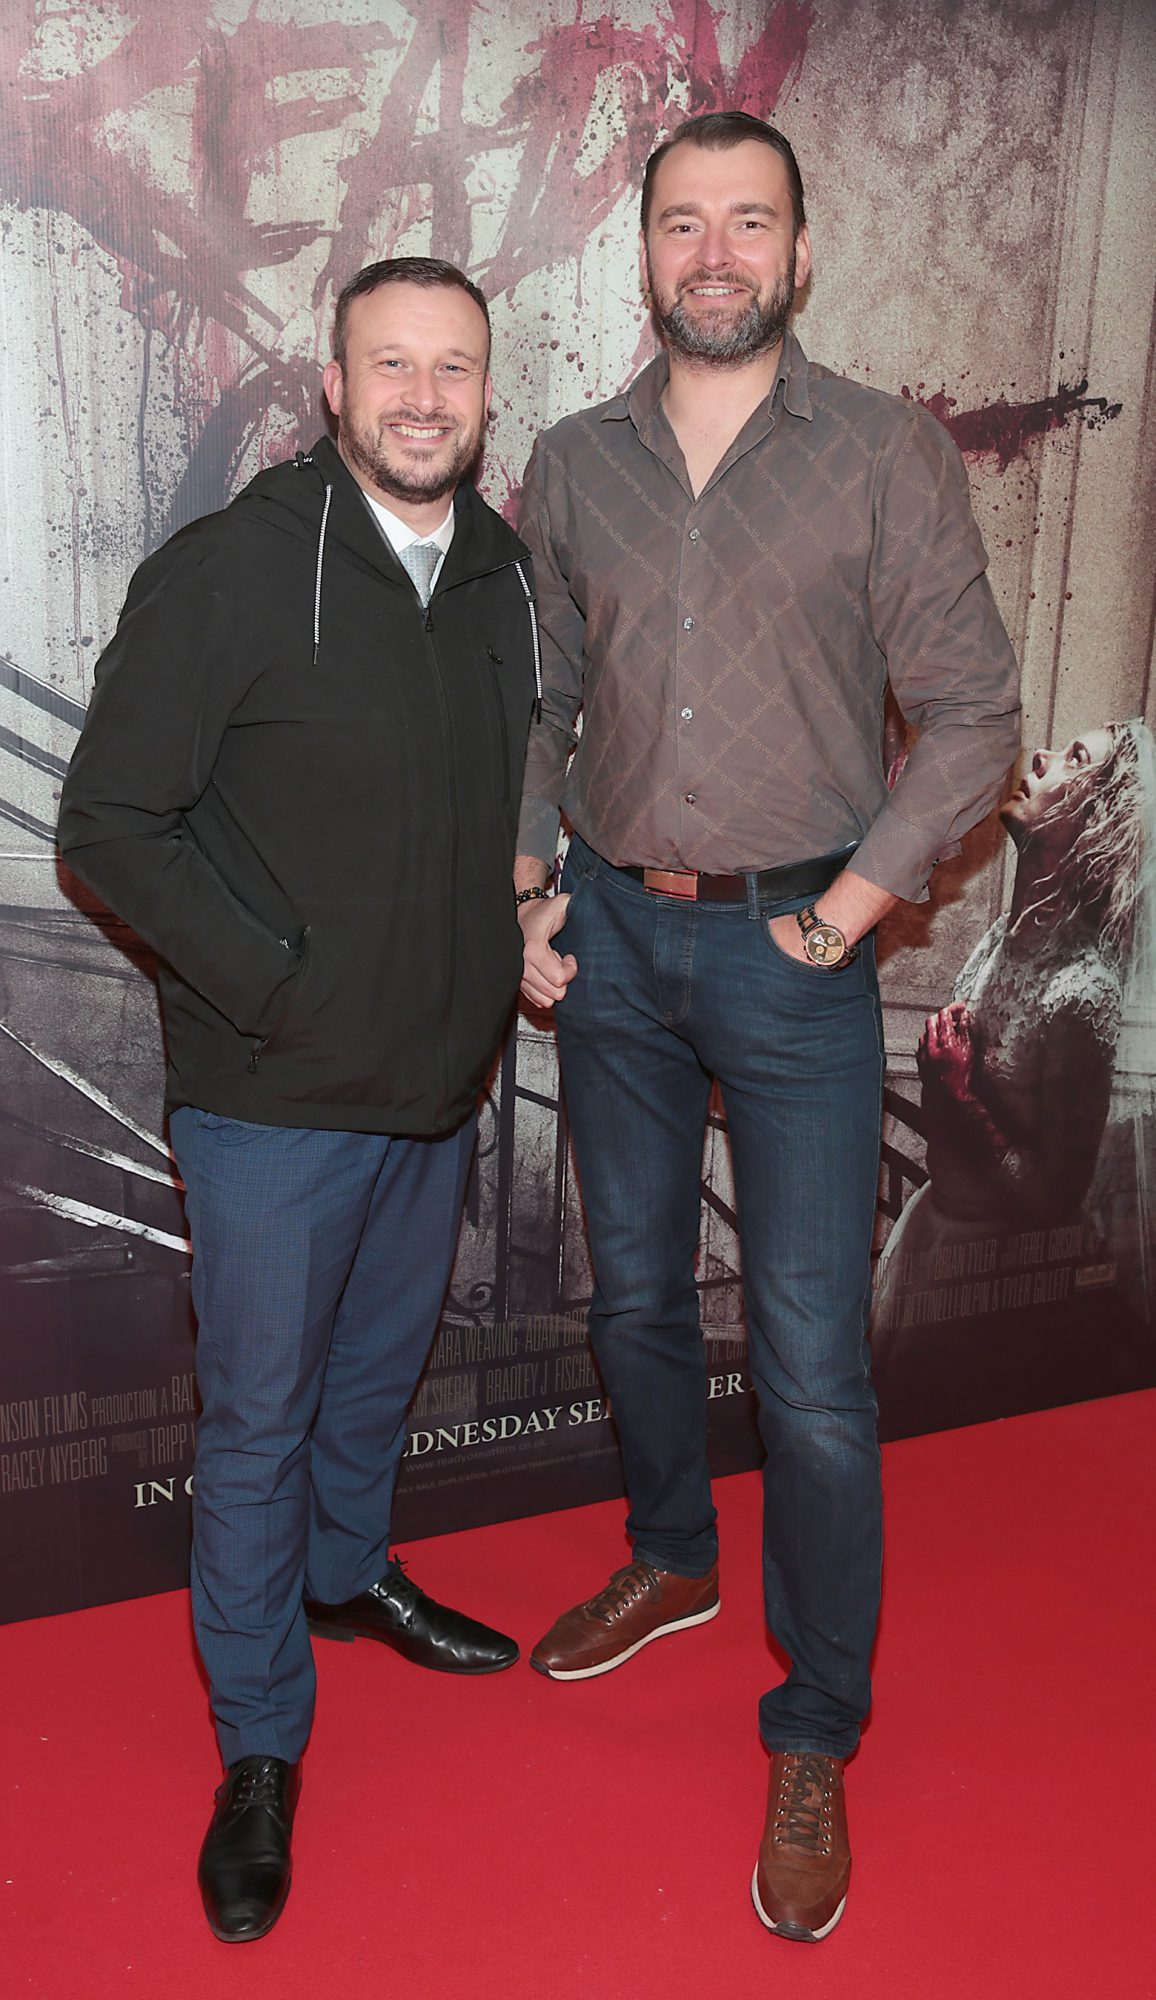 John Kearns and Piotr Jankowski  pictured at the special preview screening of Ready or Not at the Lighthouse Cinema, Dublin. Pic: Brian McEvoy